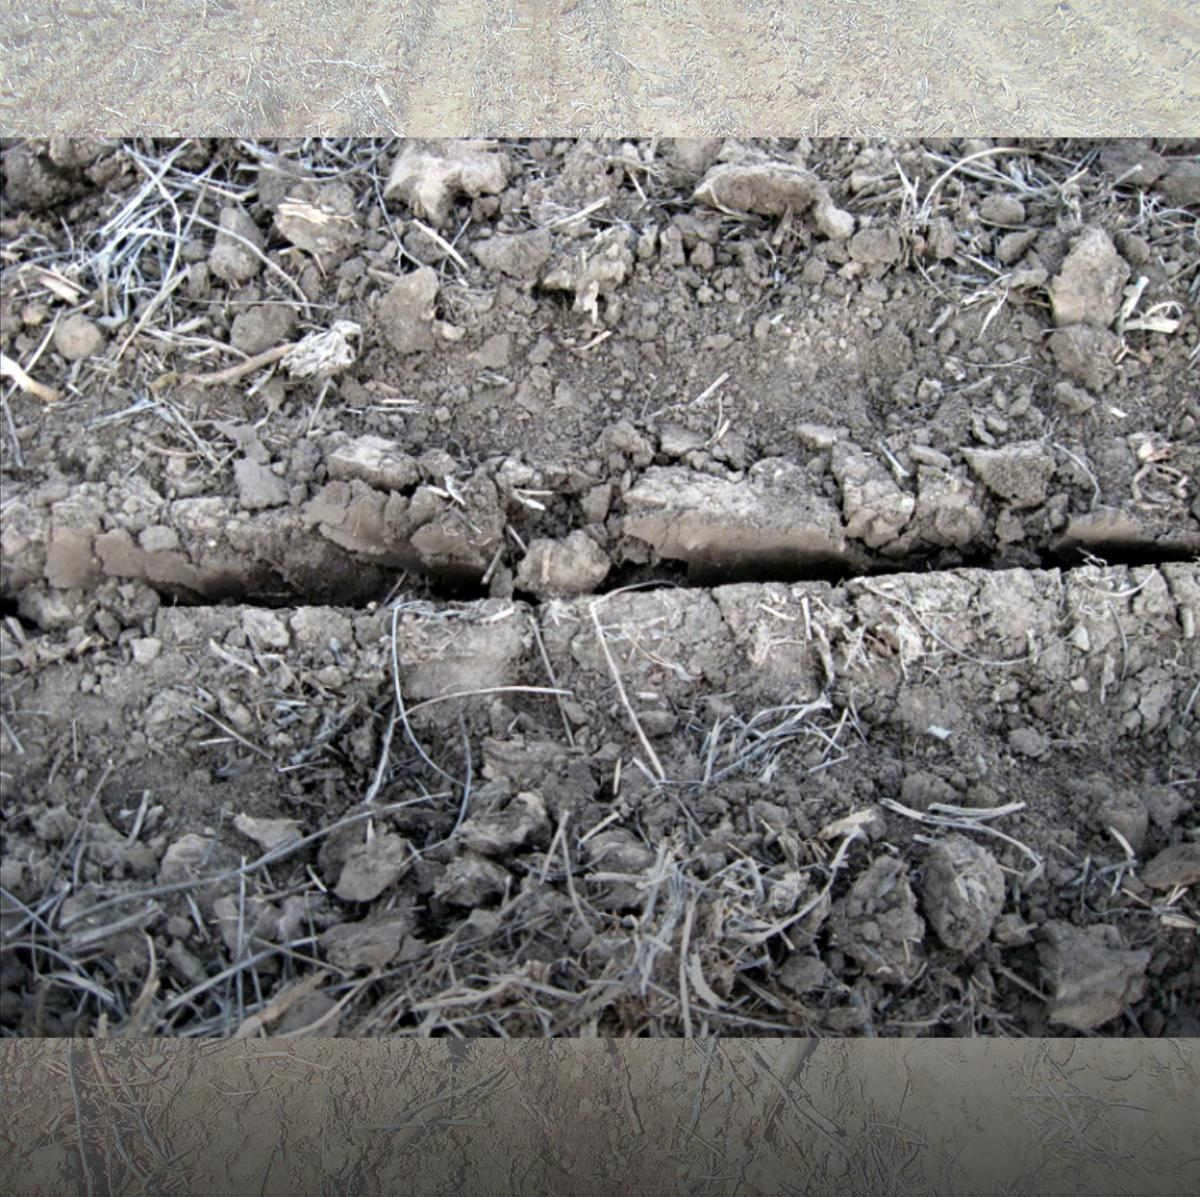 An open V in the seed trench, showing poor seed-to-soil contact.